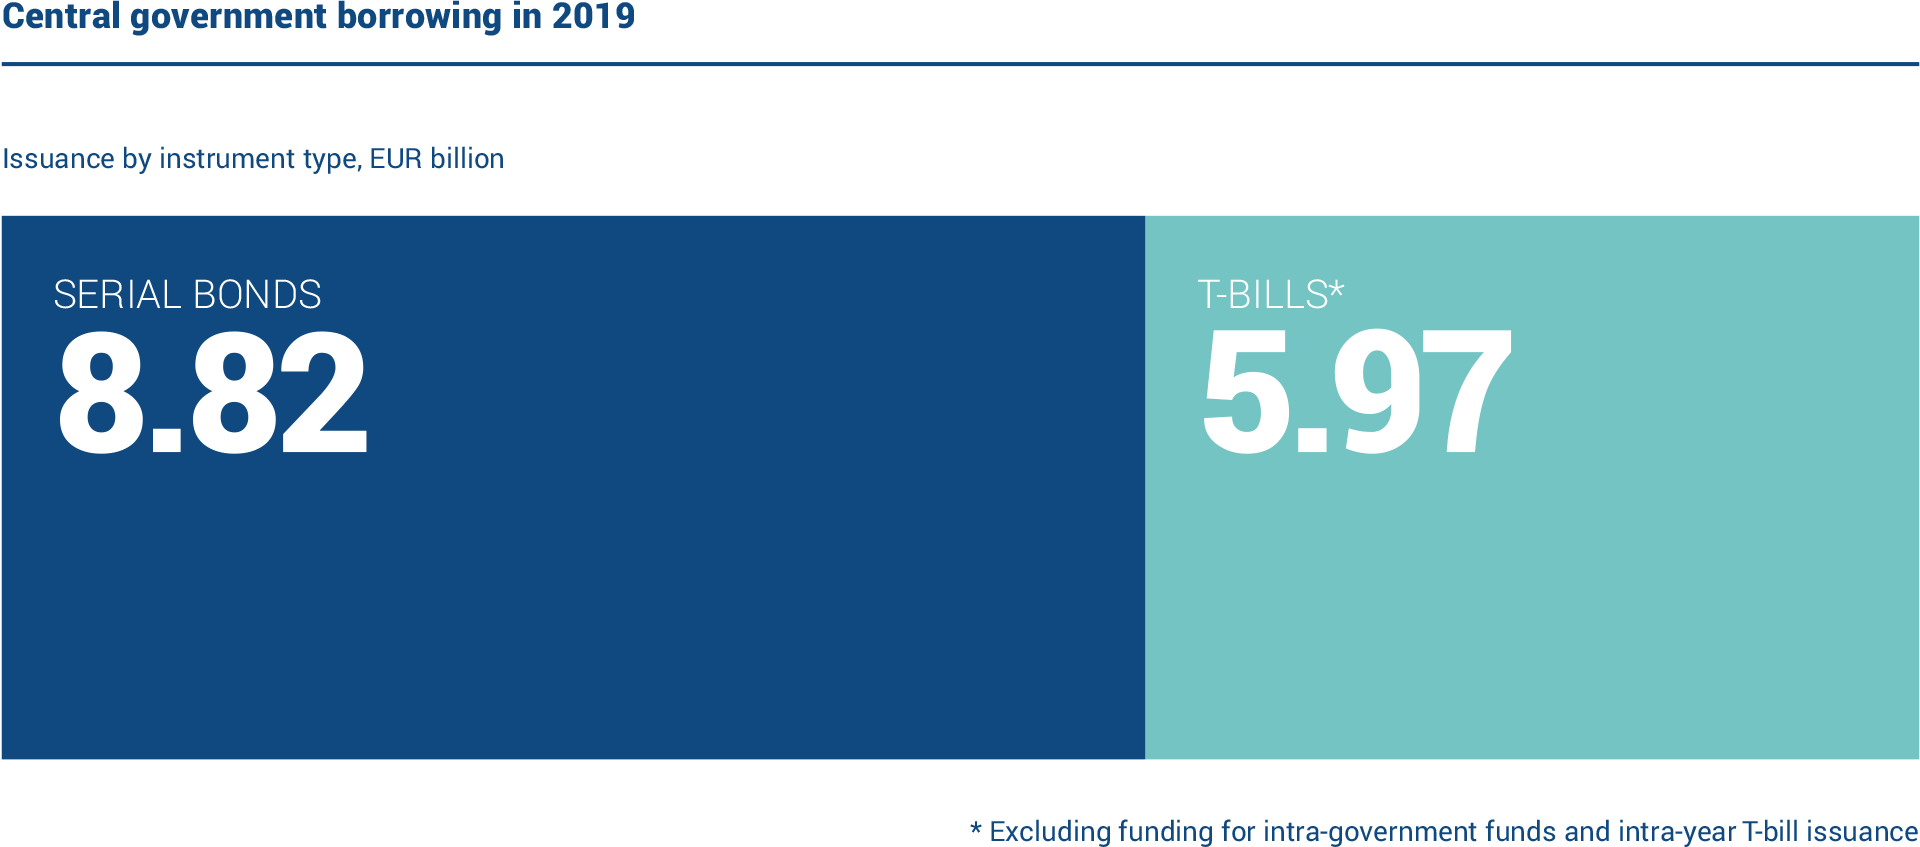 The realised gross borrowing amount in 2019 was EUR 14.8 billion. Of this amount, long-term issuance accounted for EUR 8.82 billion and short-term borrowing for EUR 5.97 billion.